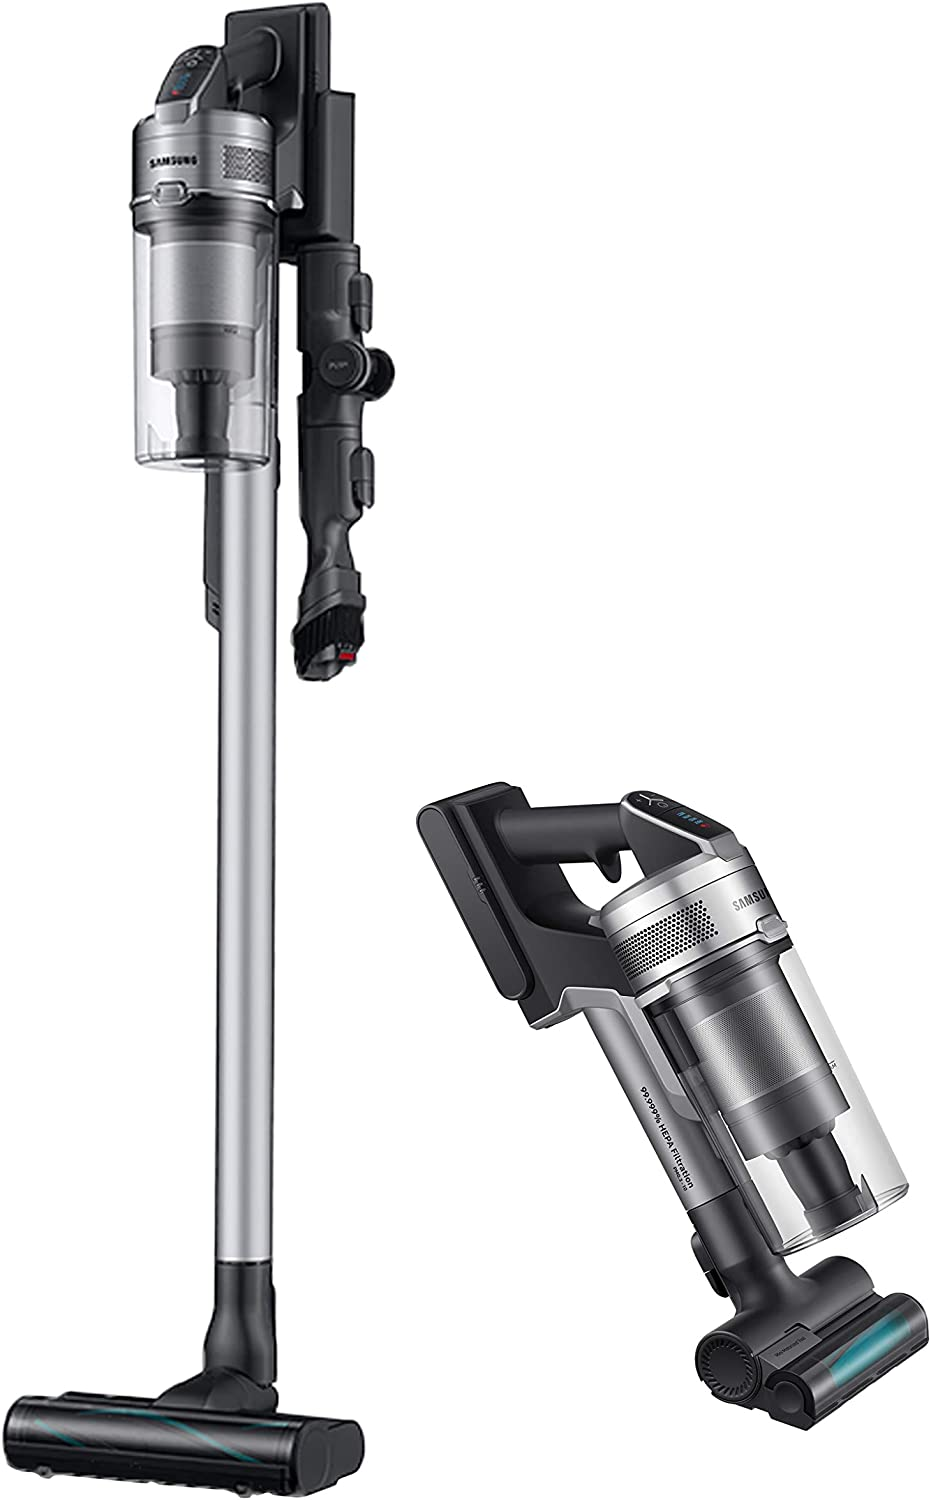 Samsung Jet 75 Complete Stick Lightweight Cleaner with Removable Long Lasting Battery and 200 Air Watt Suction Power Cordless Vacuum with 180° Swivel Brush (VS20T7536T5), Titan Silver